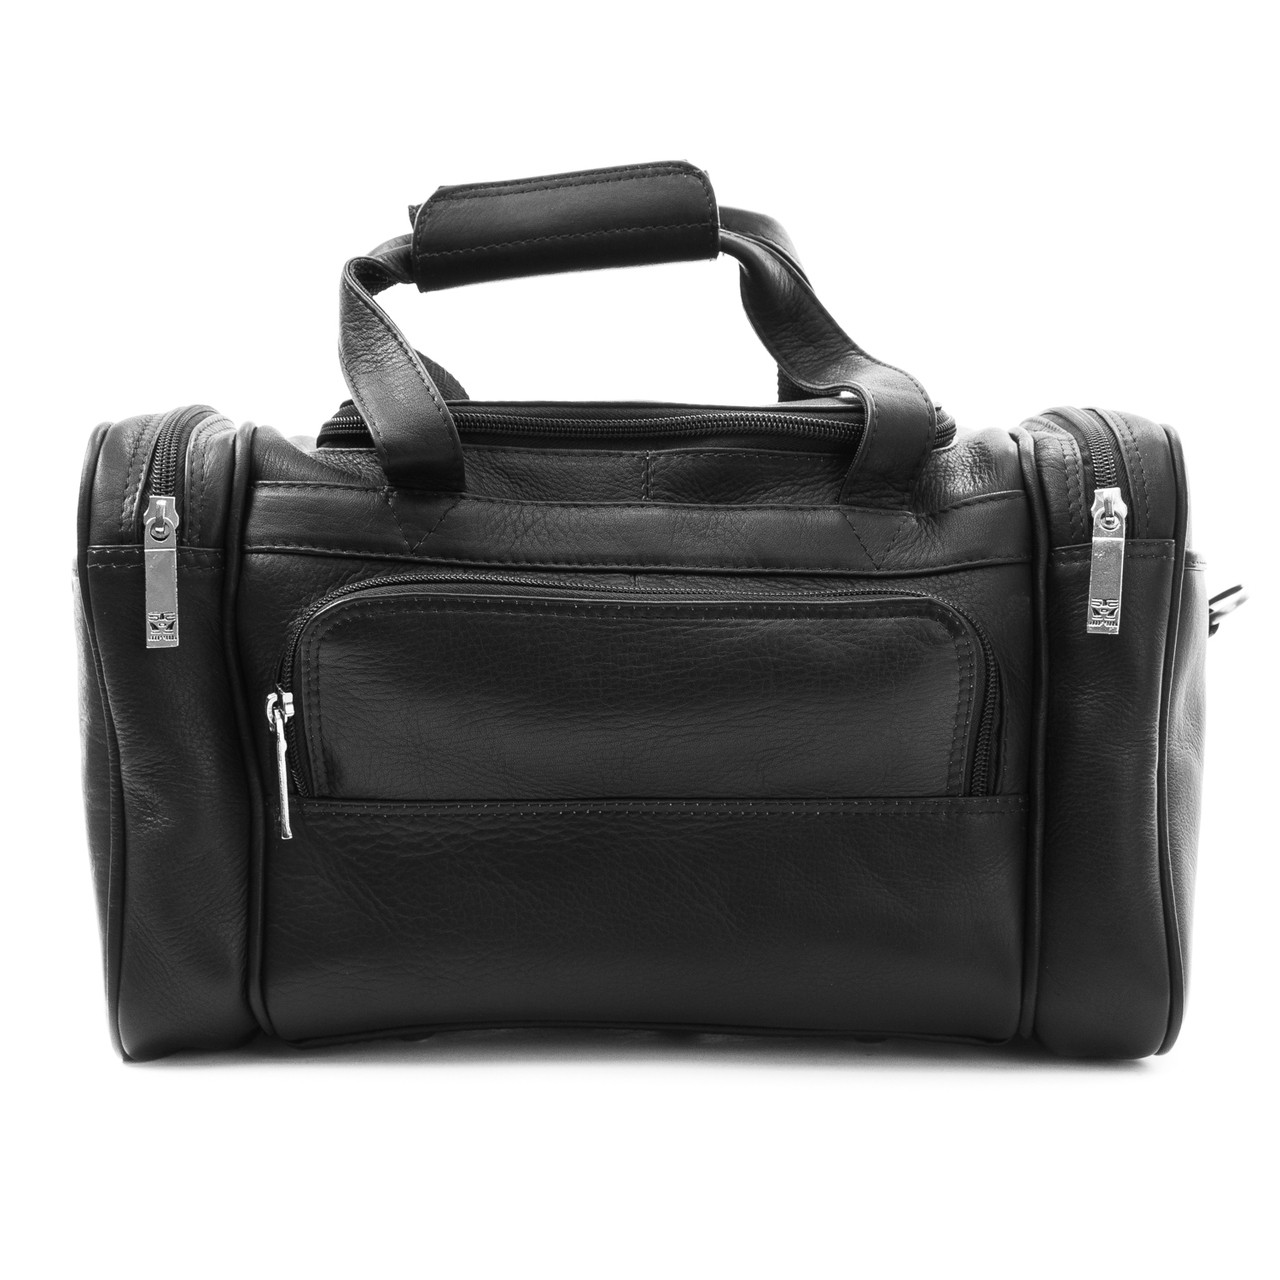 Muiska - Marco - Small Sport Leather Duffel Bag  in Black